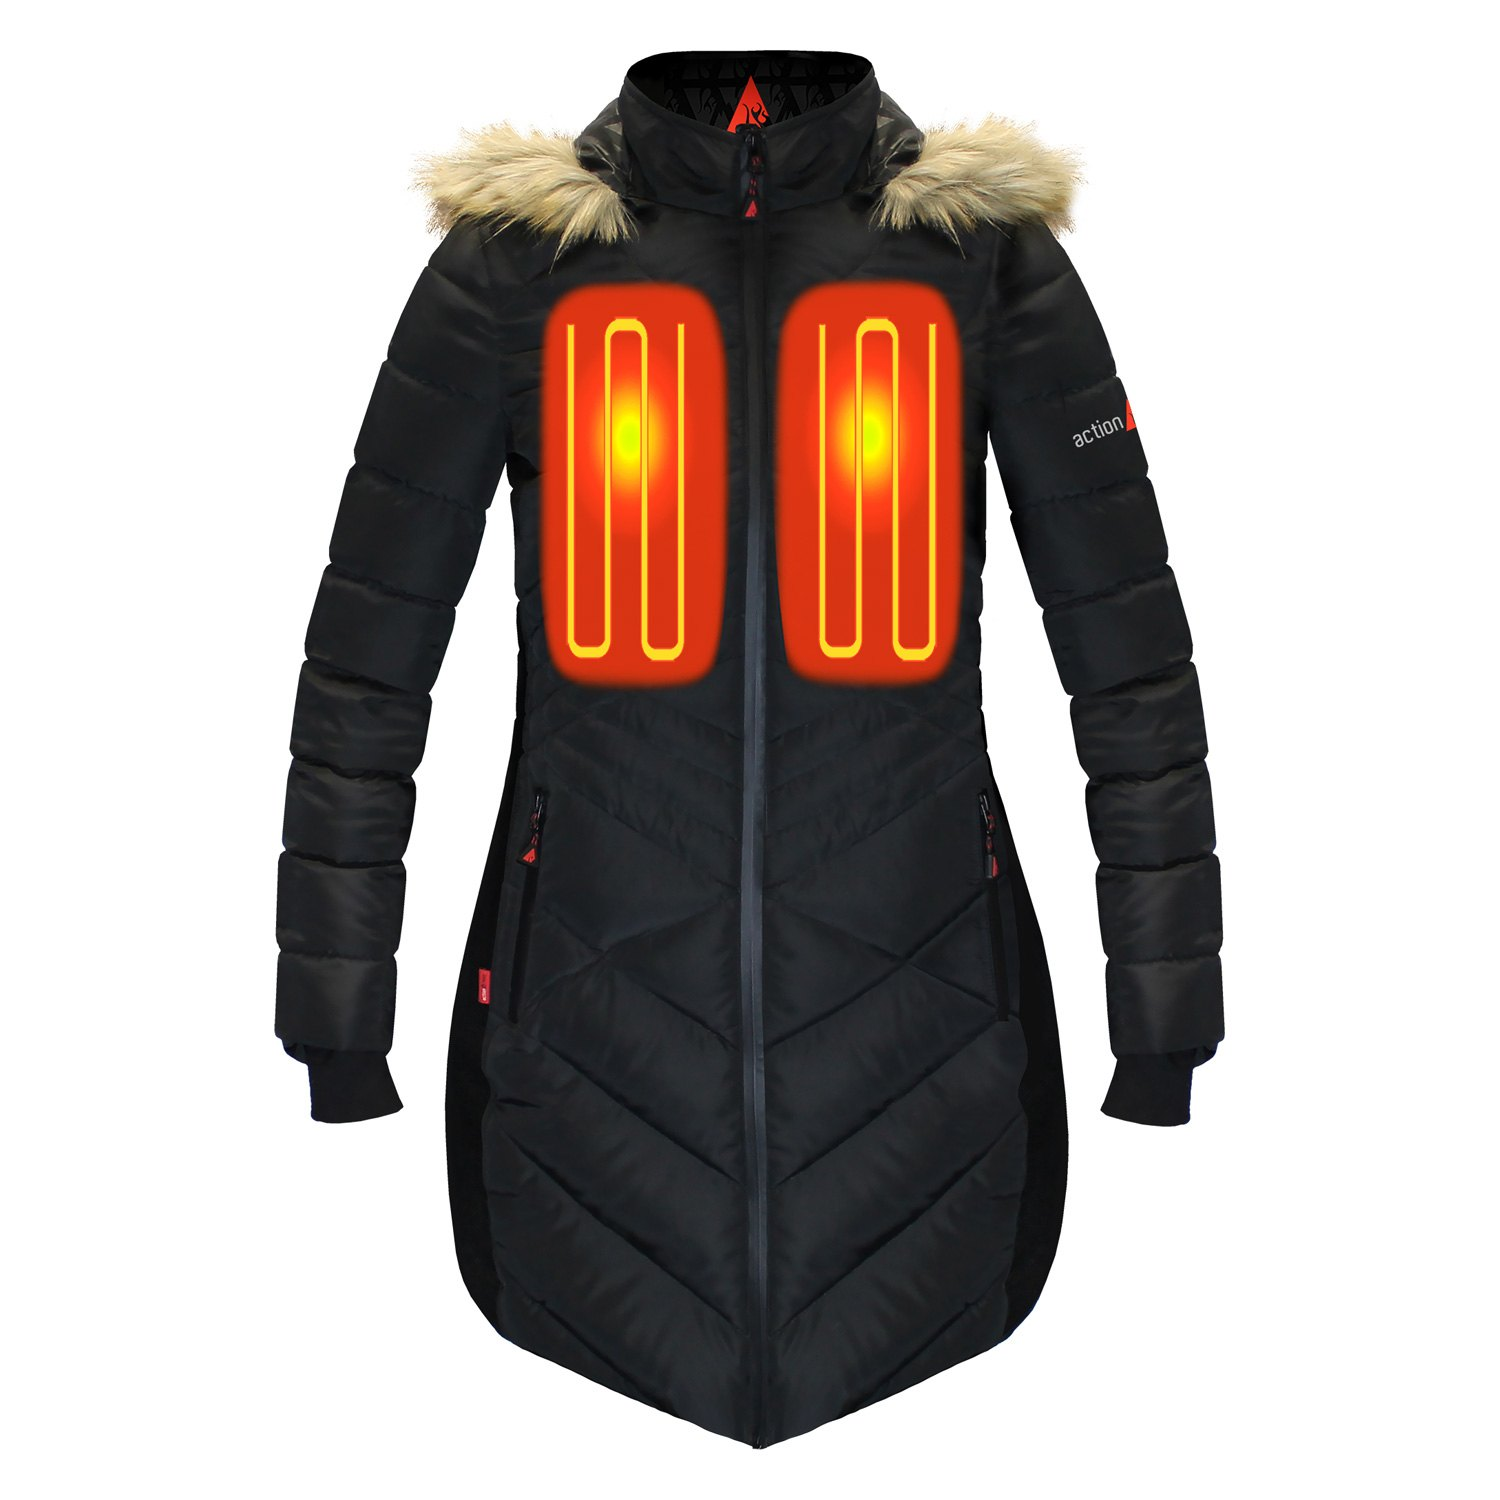 Womens Heated Clothing >> Actionheat Ah Lpjkt 5v W B S 5v Women S Heated Long Puffer Jacket With Hood Small Black